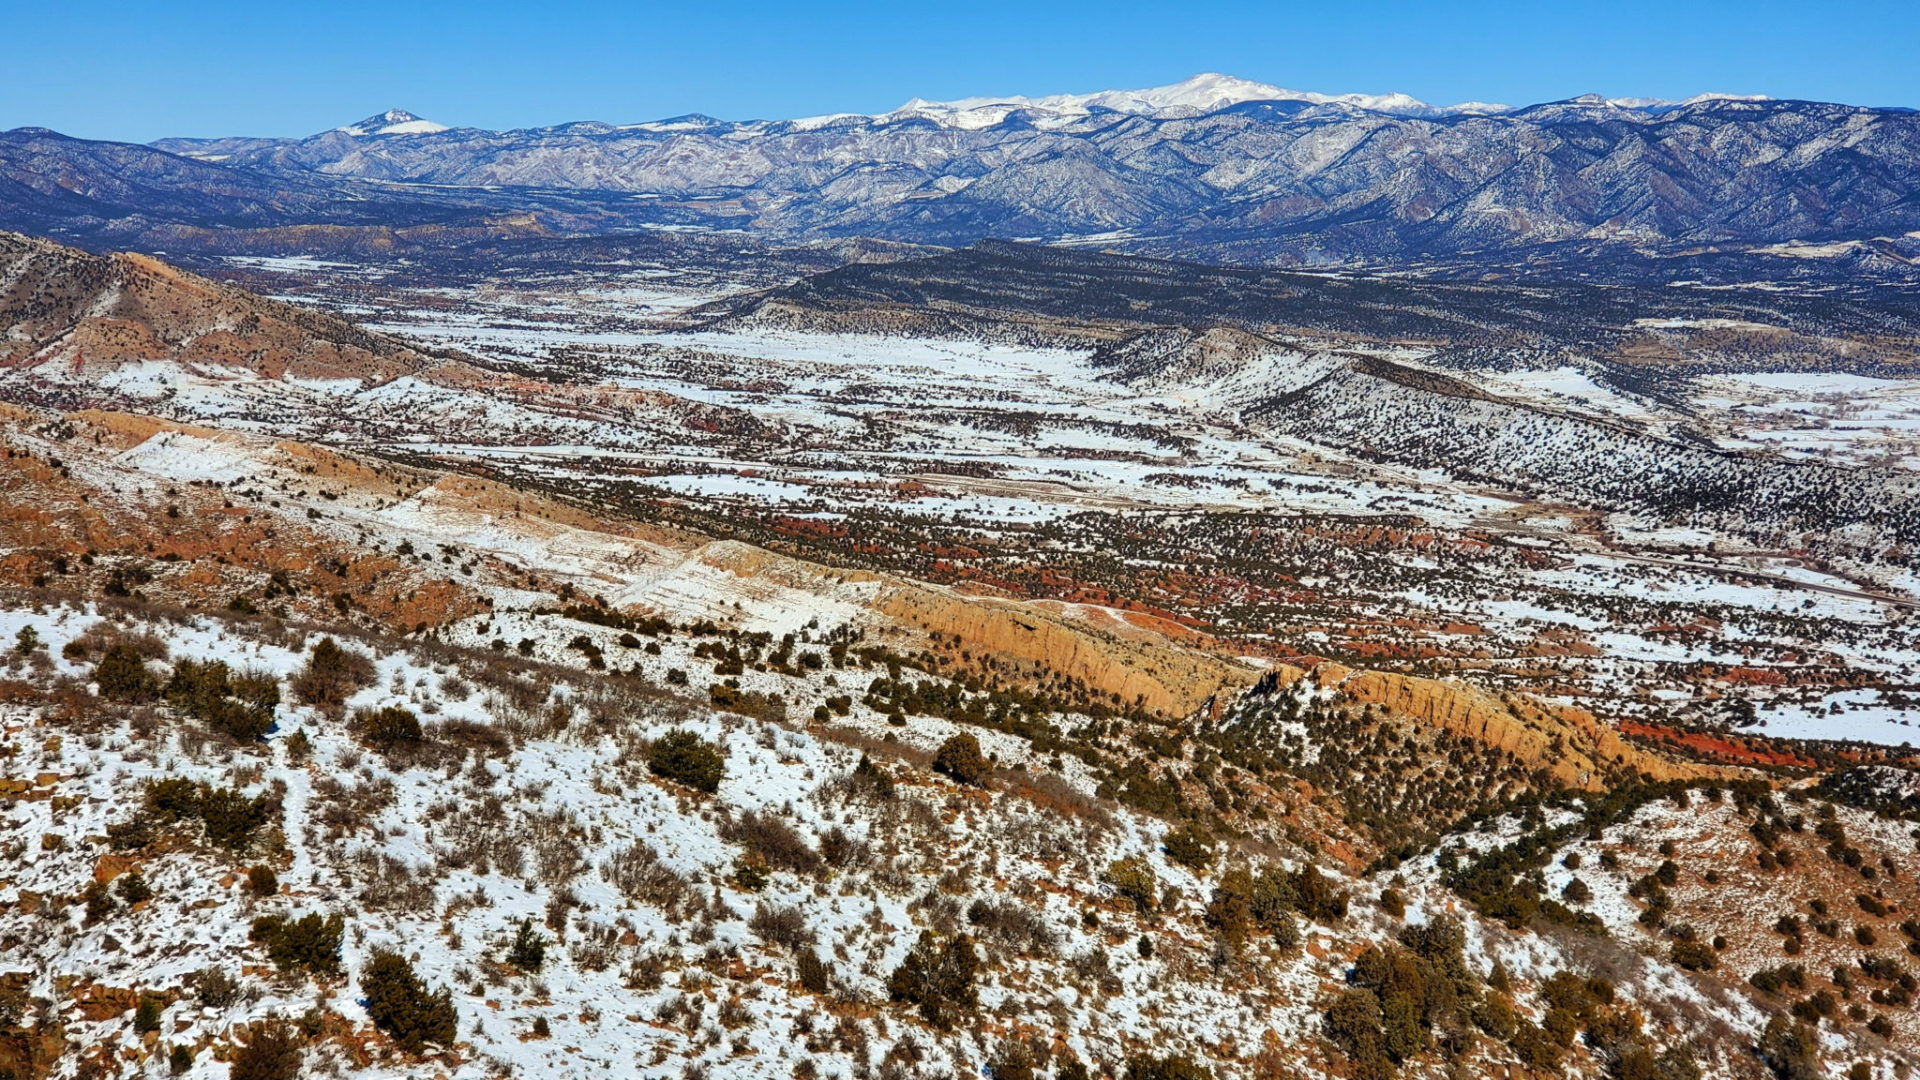 View of Pikes Peak to the north